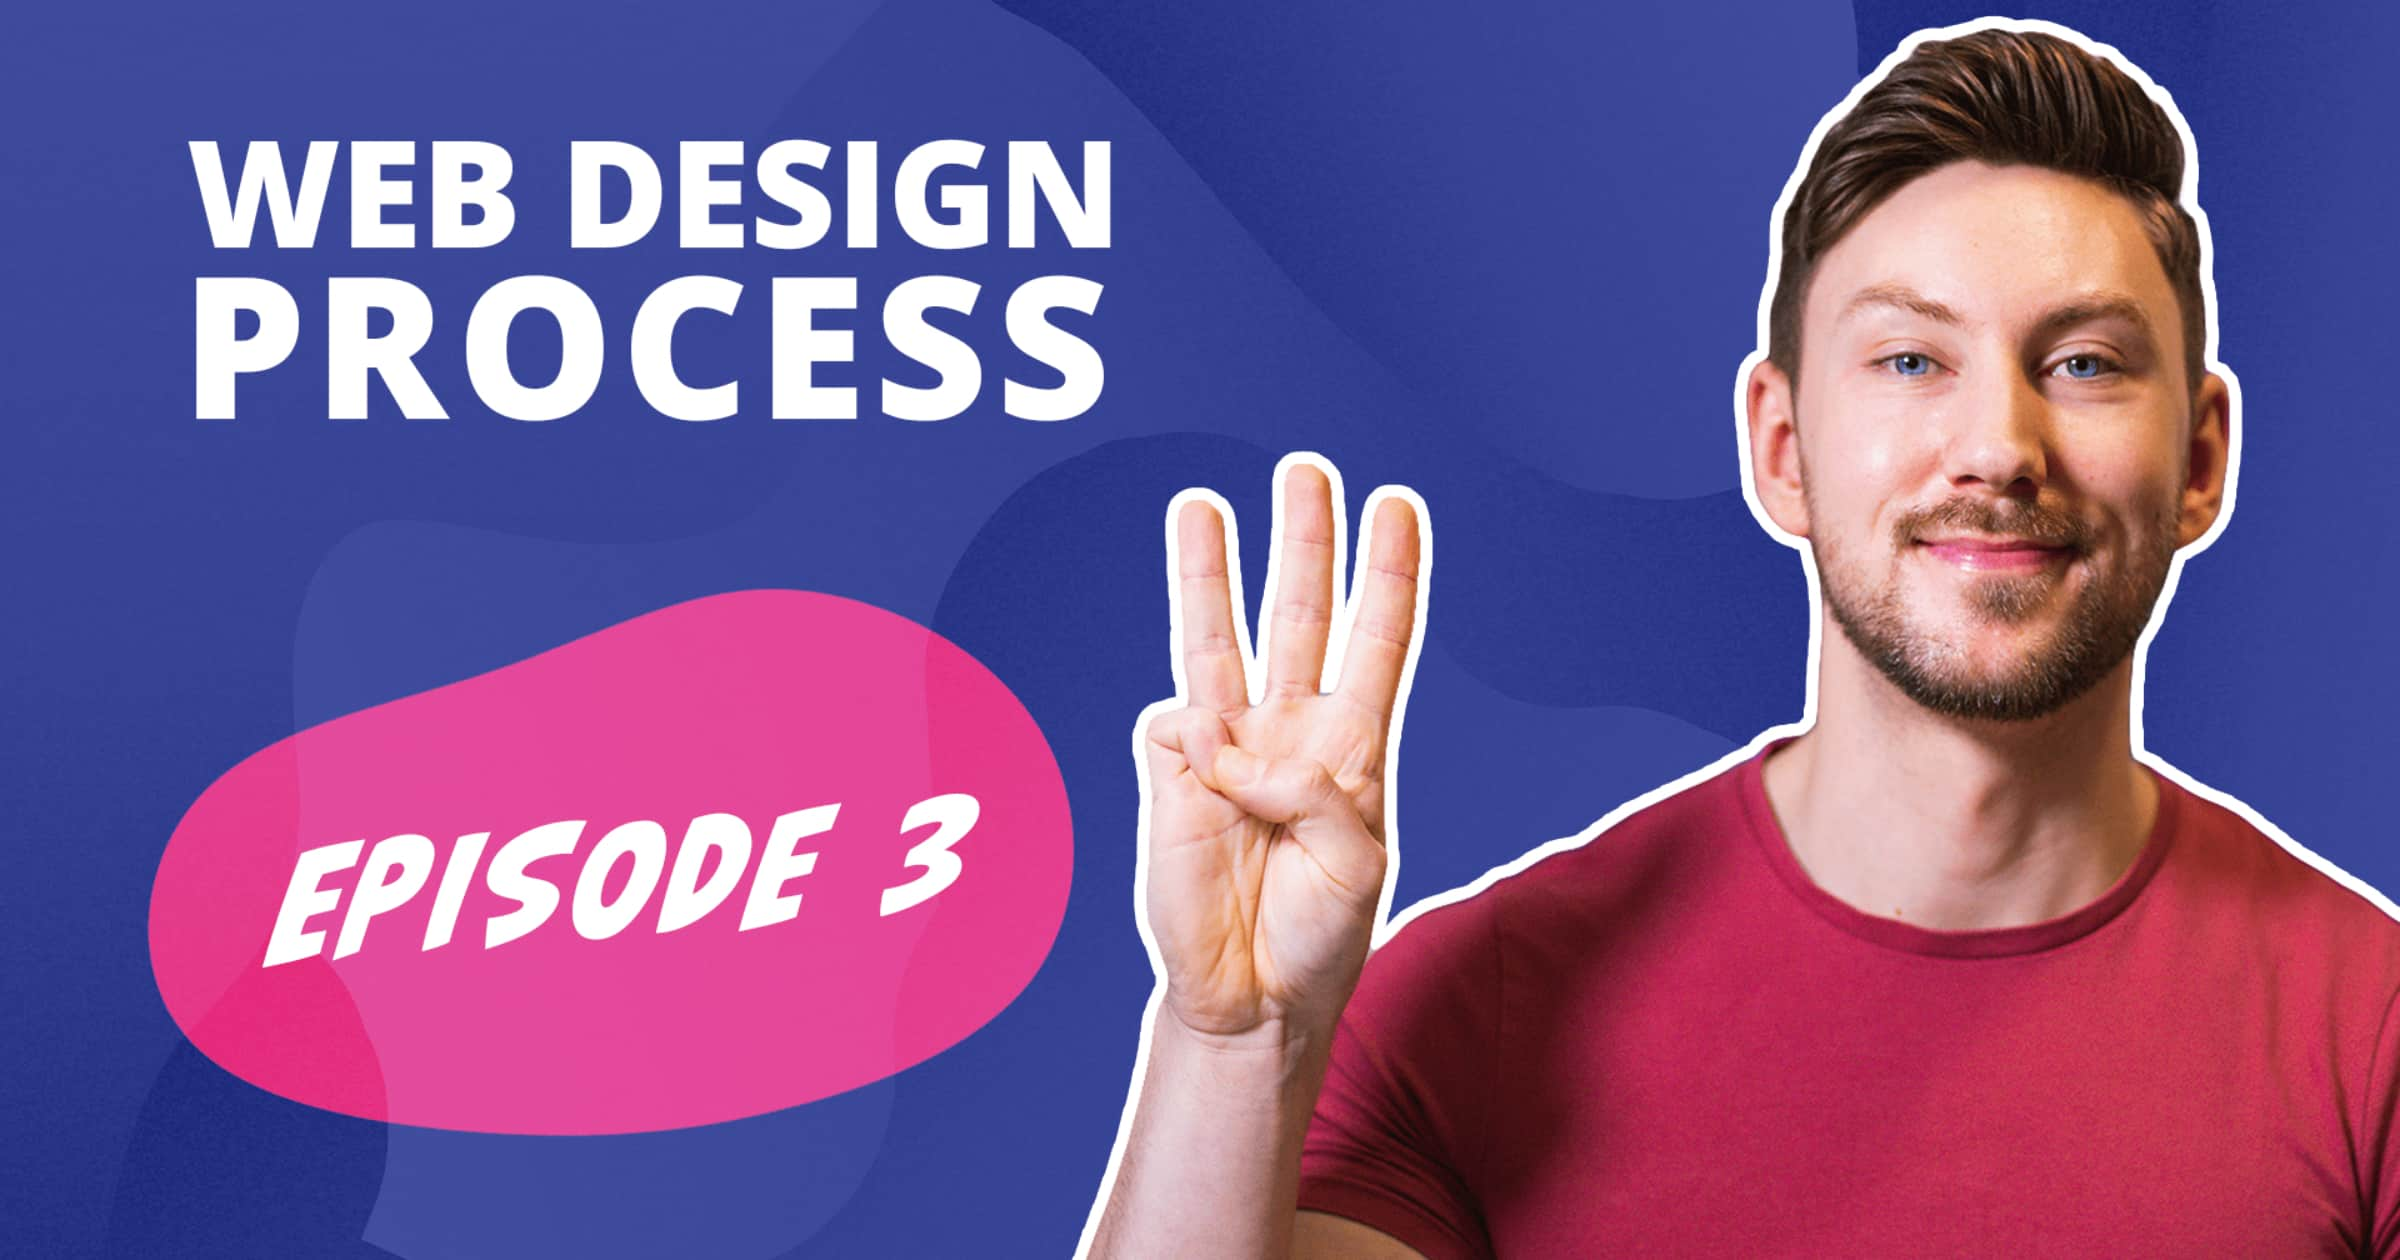 A picture of Freelance Web Designer & Branding Specialist Aidan Quigley holding 3 fingers up and the words web design process Episode 3 on a purple bacgkround